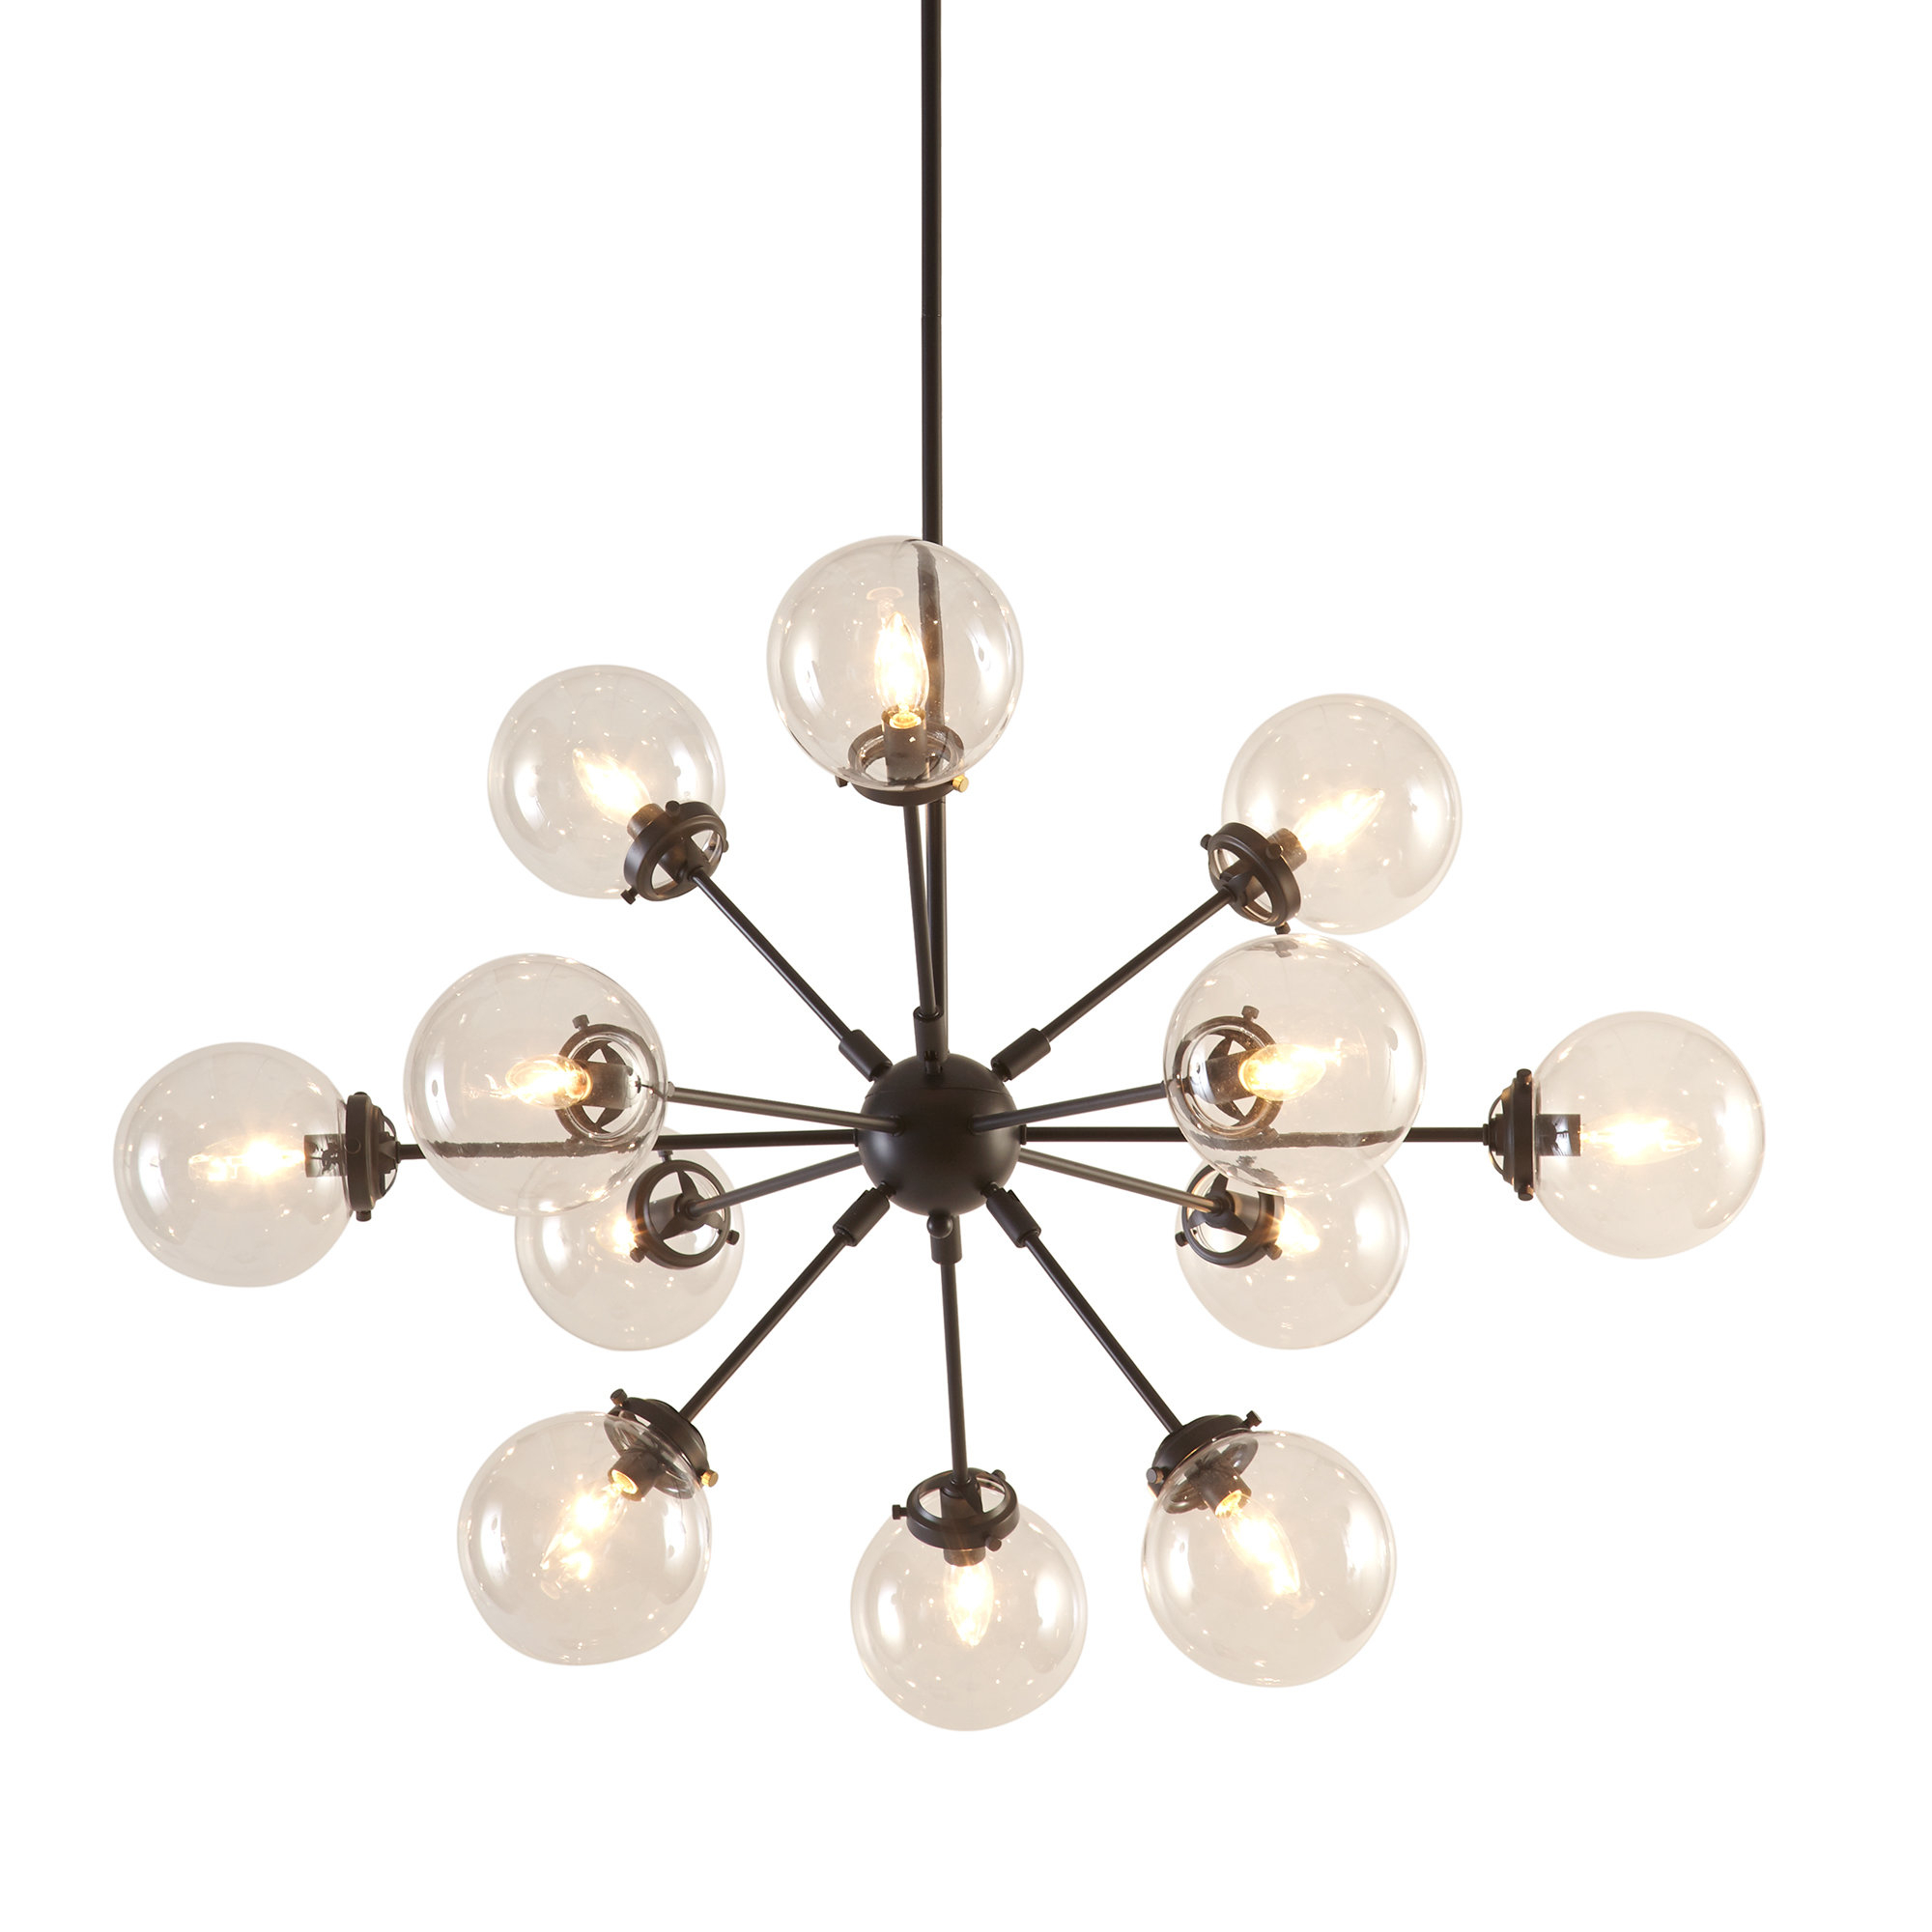 Modern Rustic Interiors Asher 12 Light Sputnik Chandelier Within Fashionable Asher 12 Light Sputnik Chandeliers (View 14 of 20)